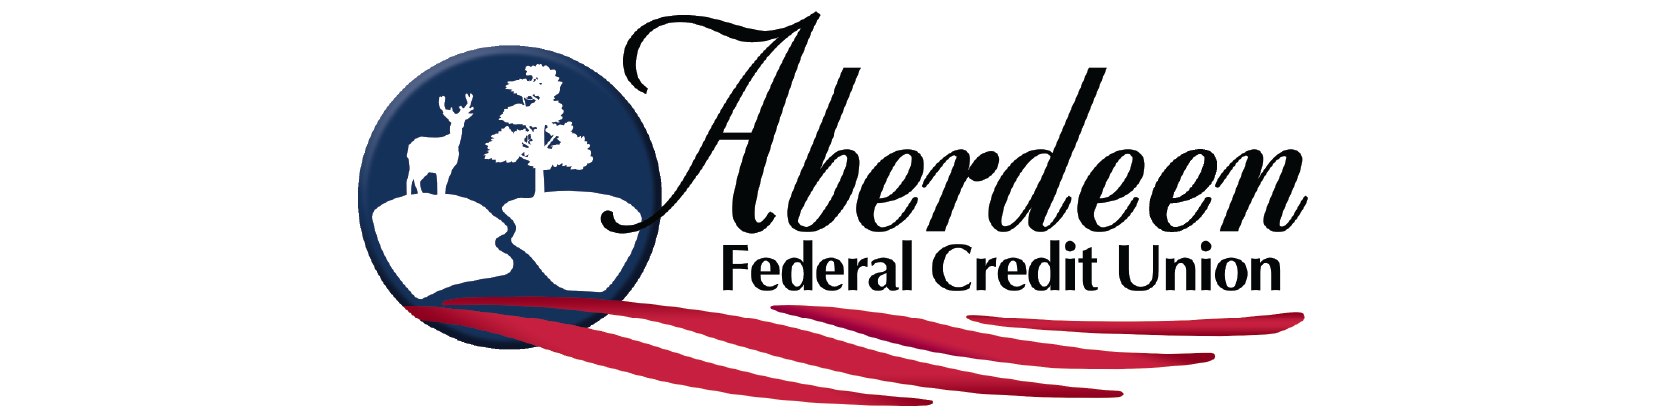 Aberdeen Federal Credit Union